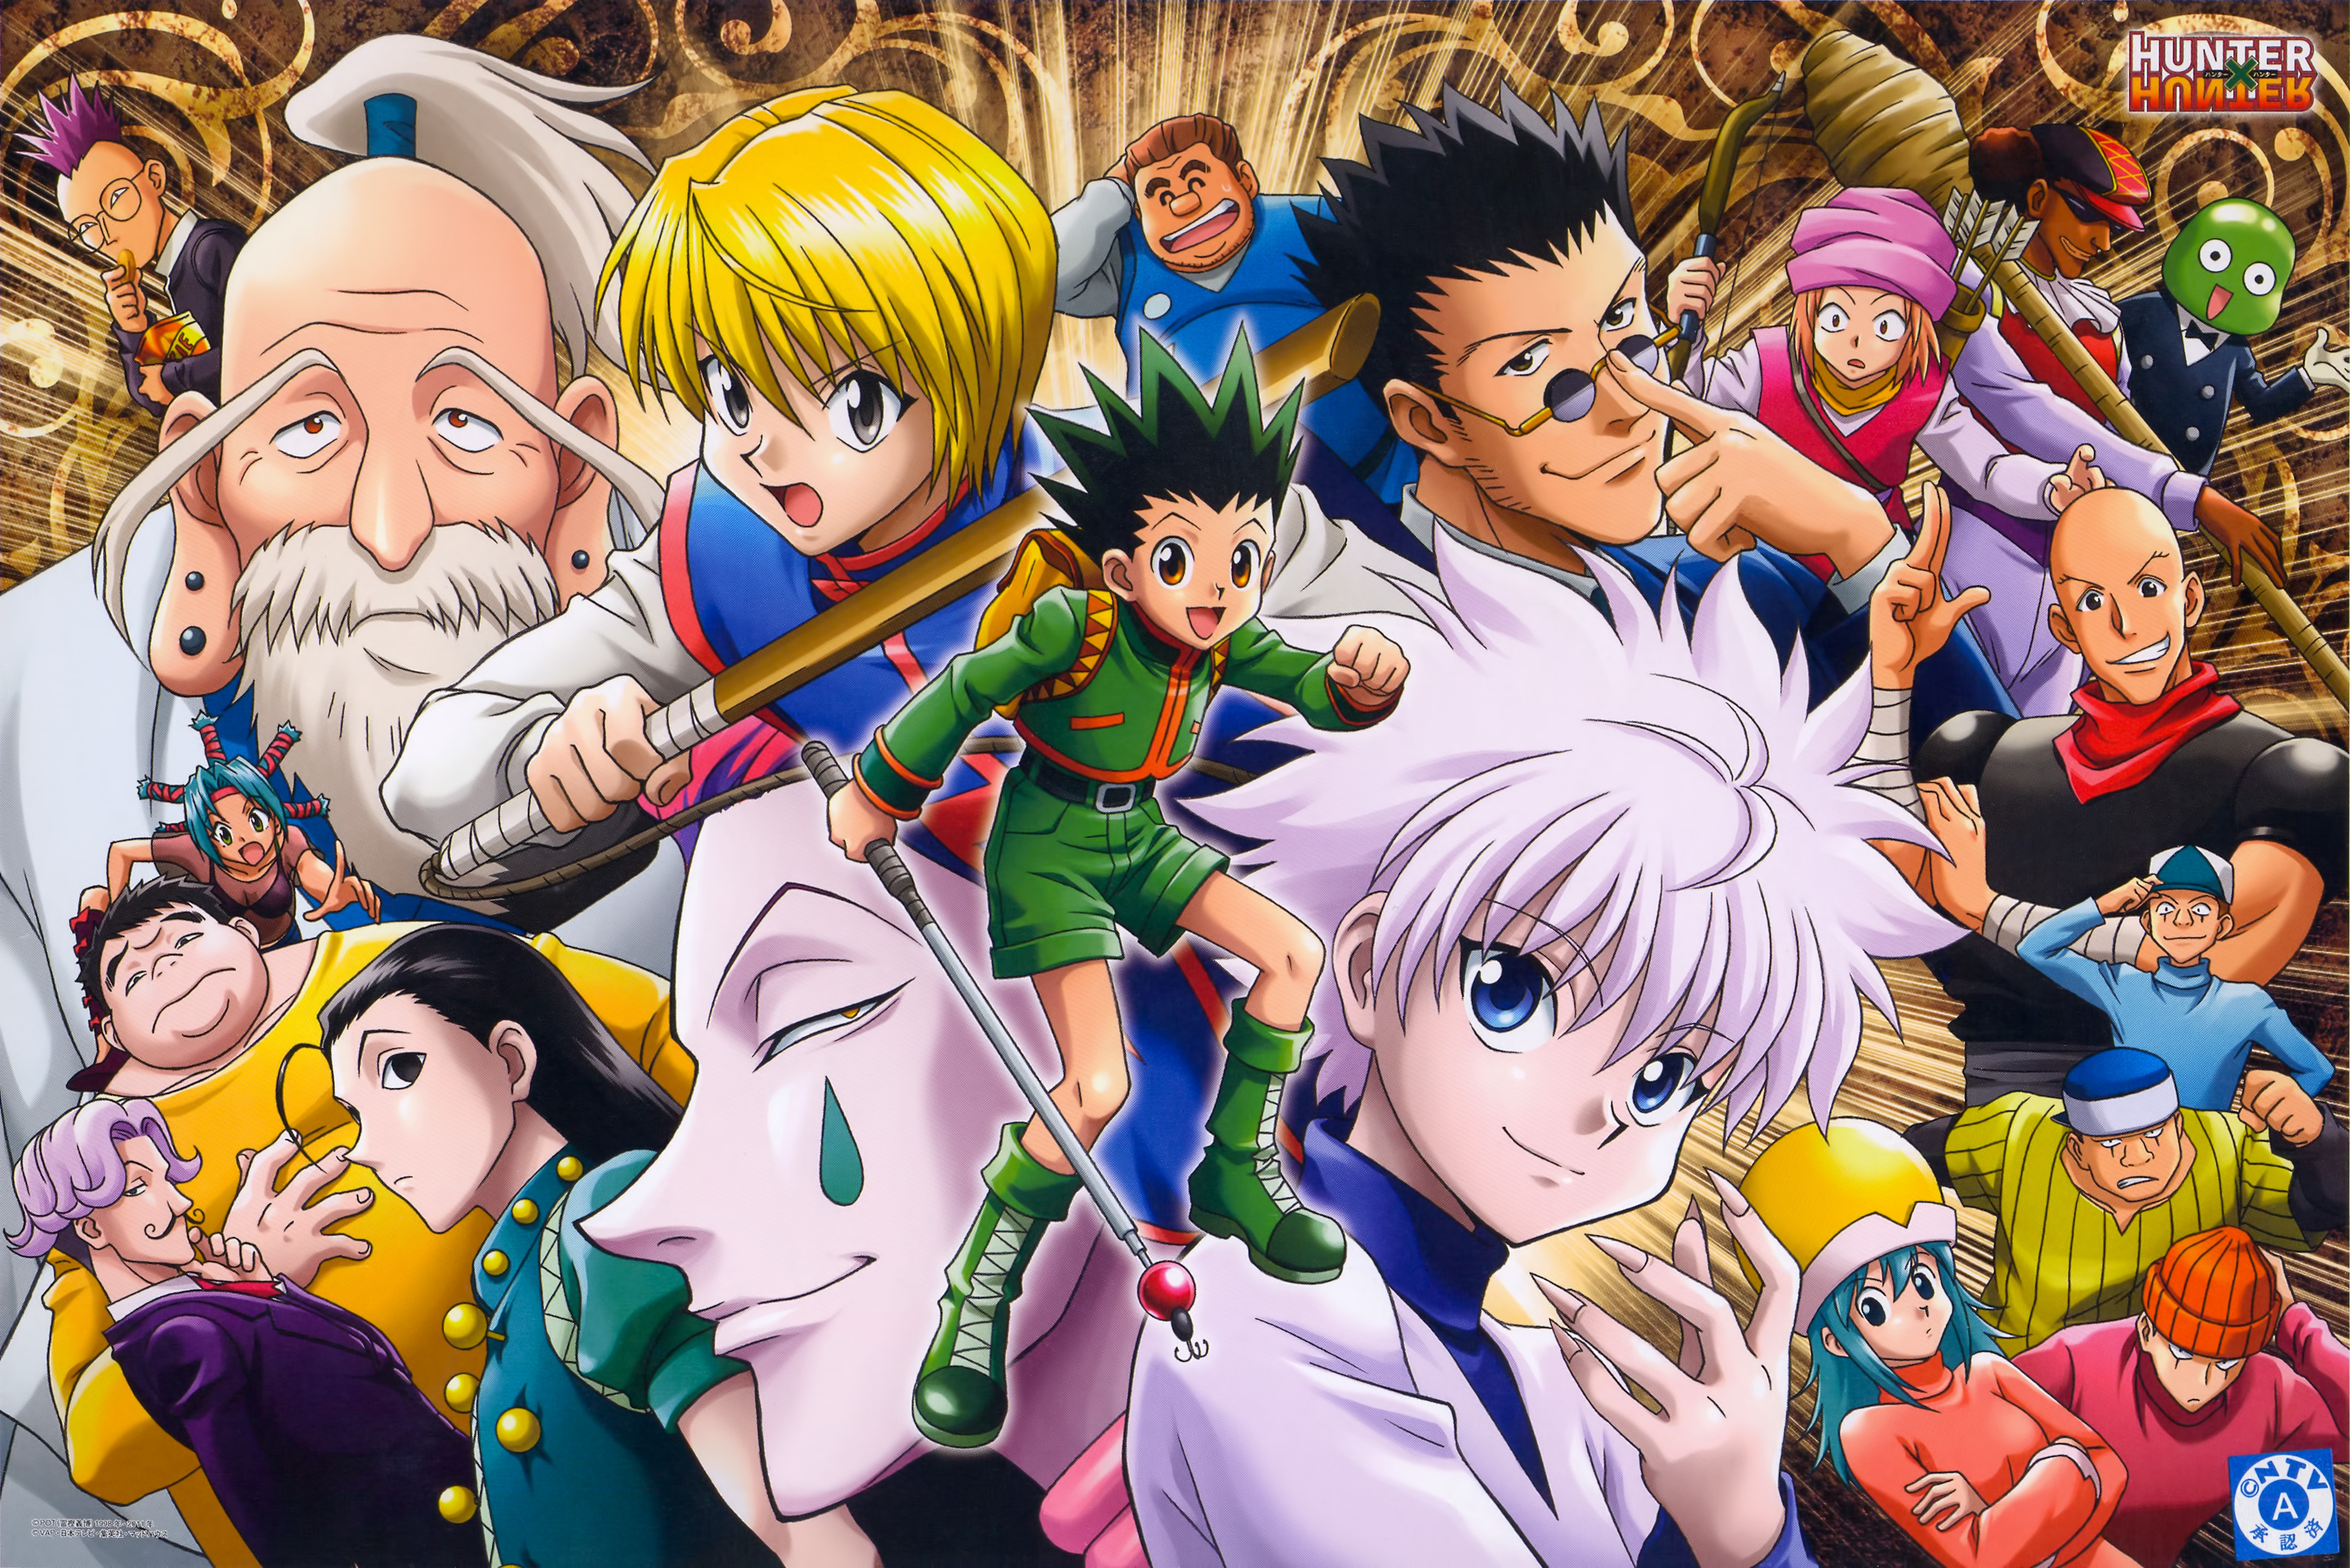 Top 10 Anime Series Females Would Recommend to Others haruhichan.com Hunter x Hunter